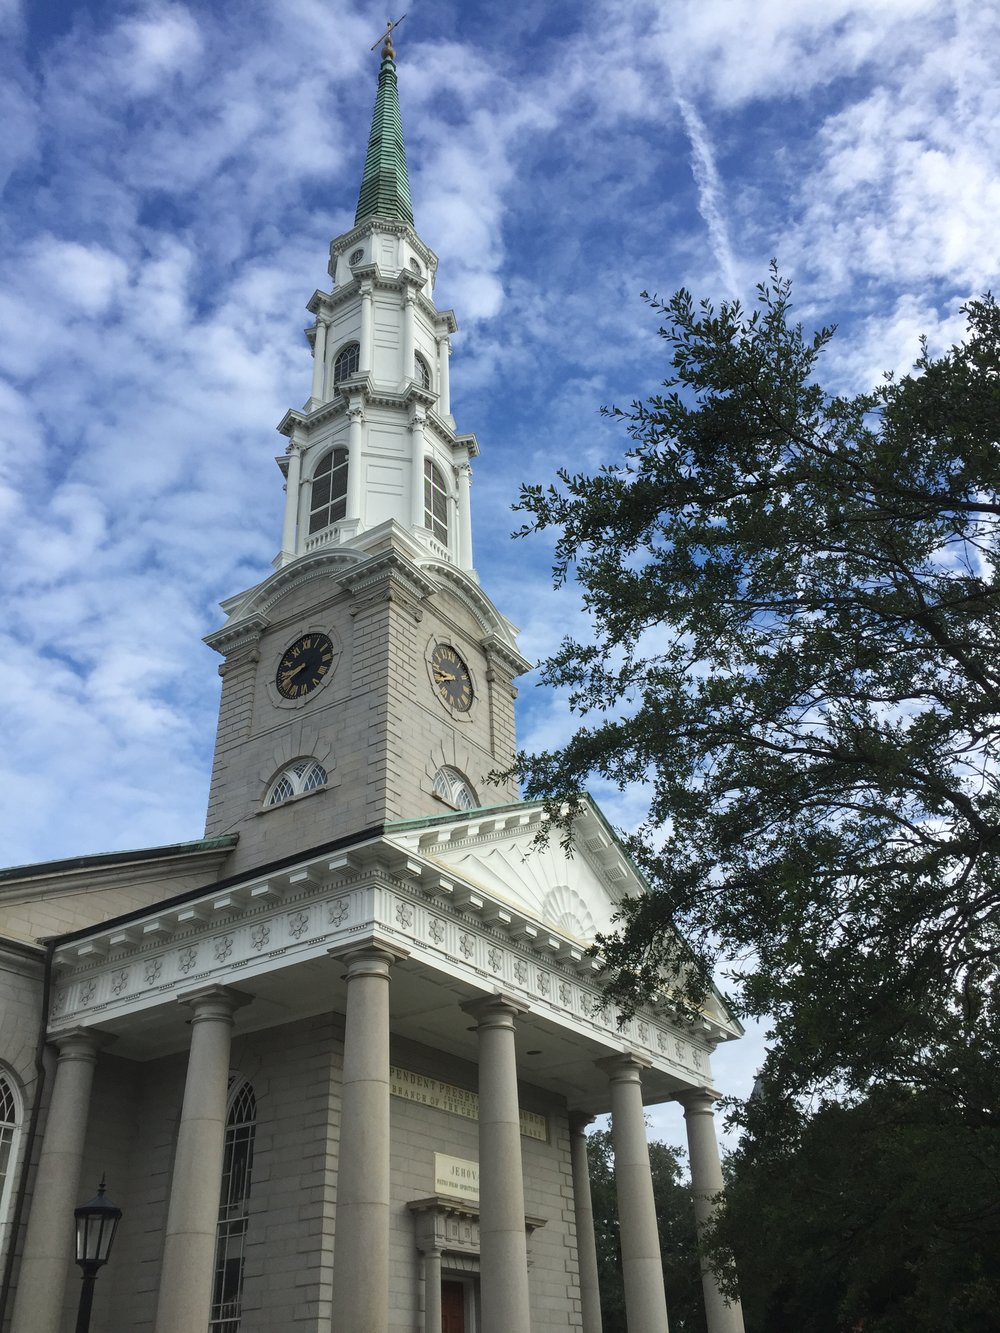 Looking up at the Independent Presbyterian Church in Savannah and finding more than I expected. I love the cloudy blue sky, the verdigris steeple, and the jet stream that mirrors it.